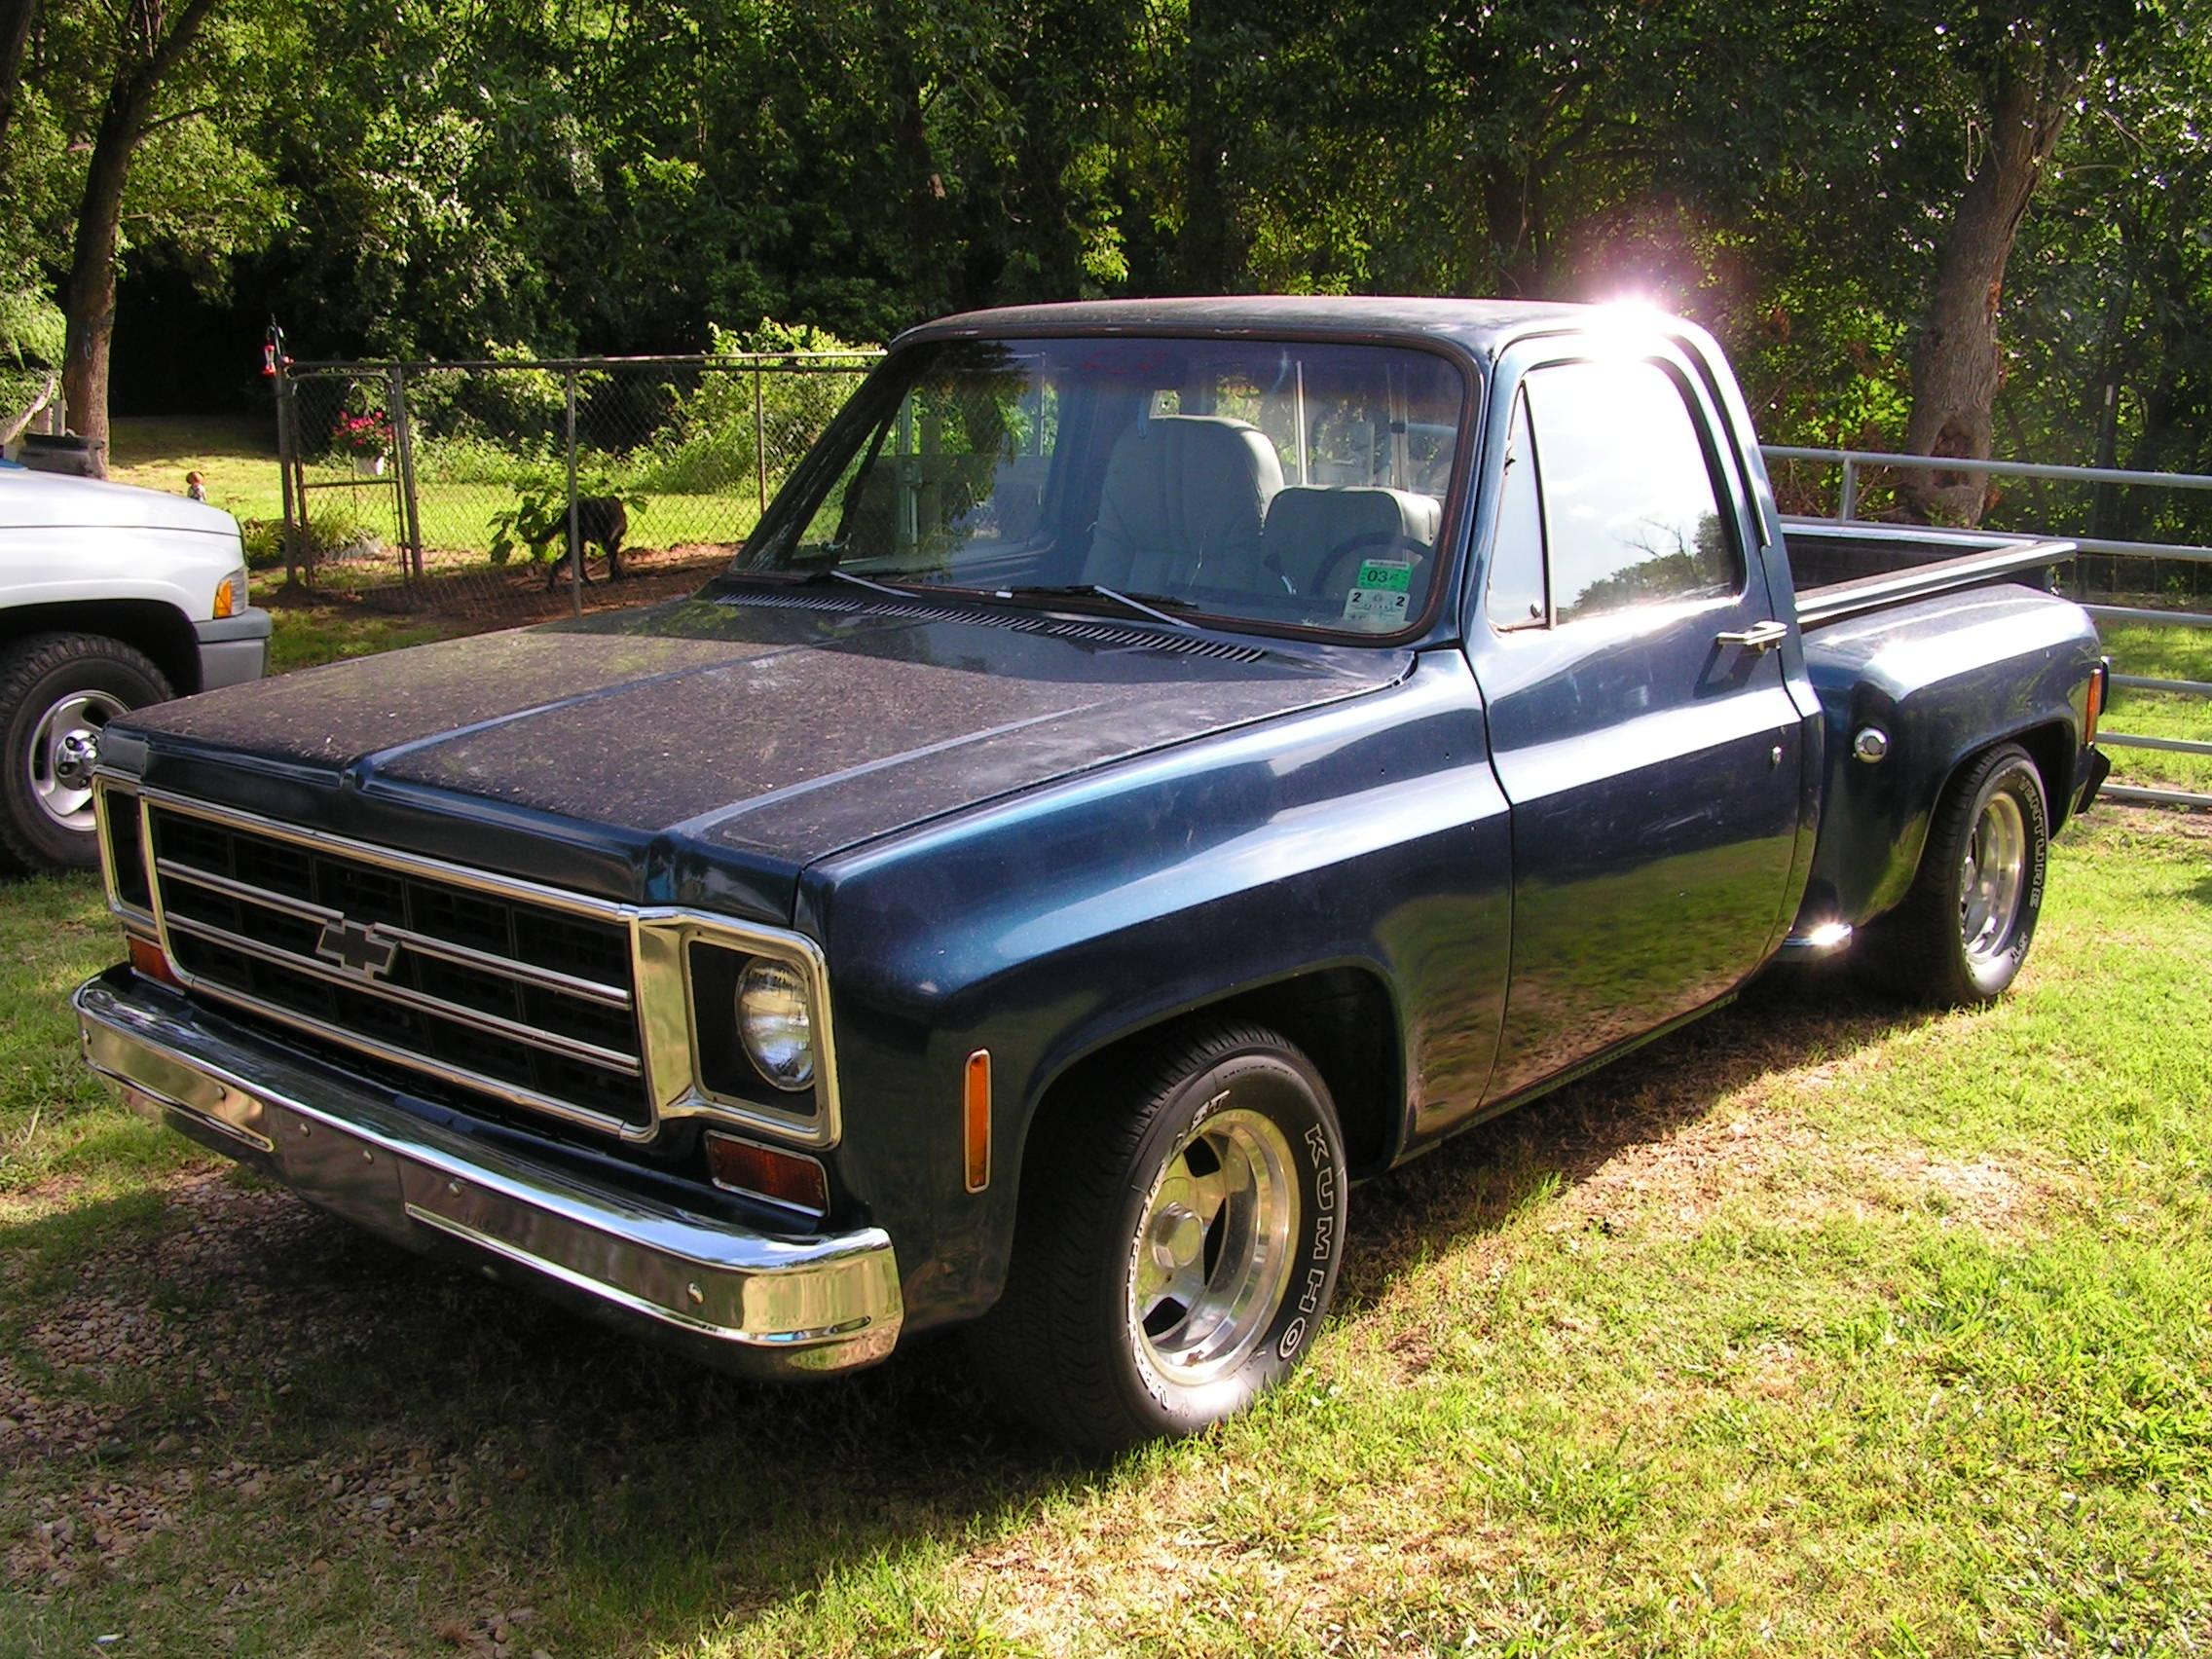 1978 silverado chevrolet 1500 cab regular ride specs cardomain follow